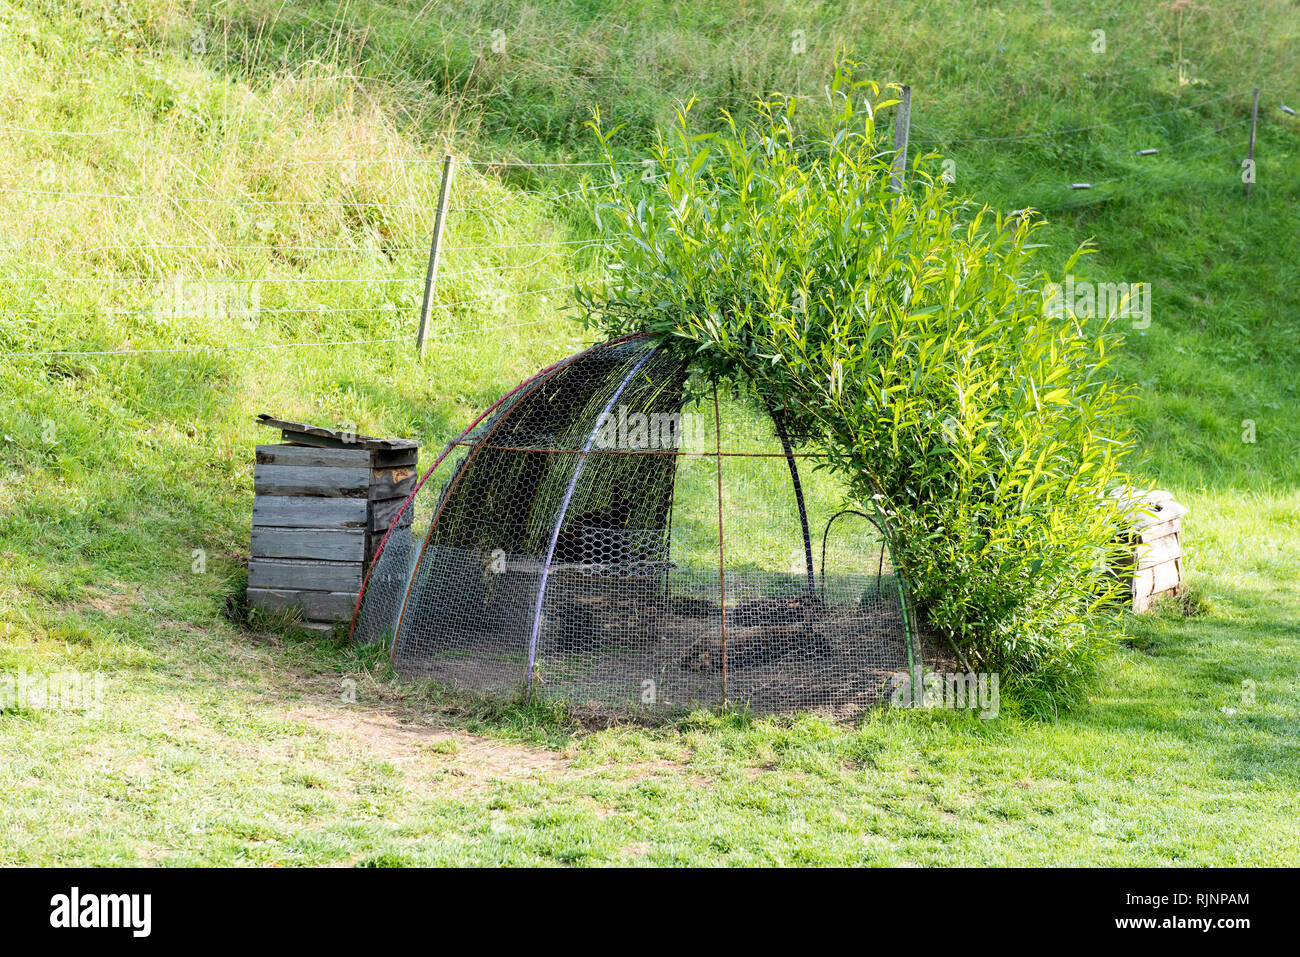 Rabbit hutch in a garden, summer, Moselle, France - Stock Image